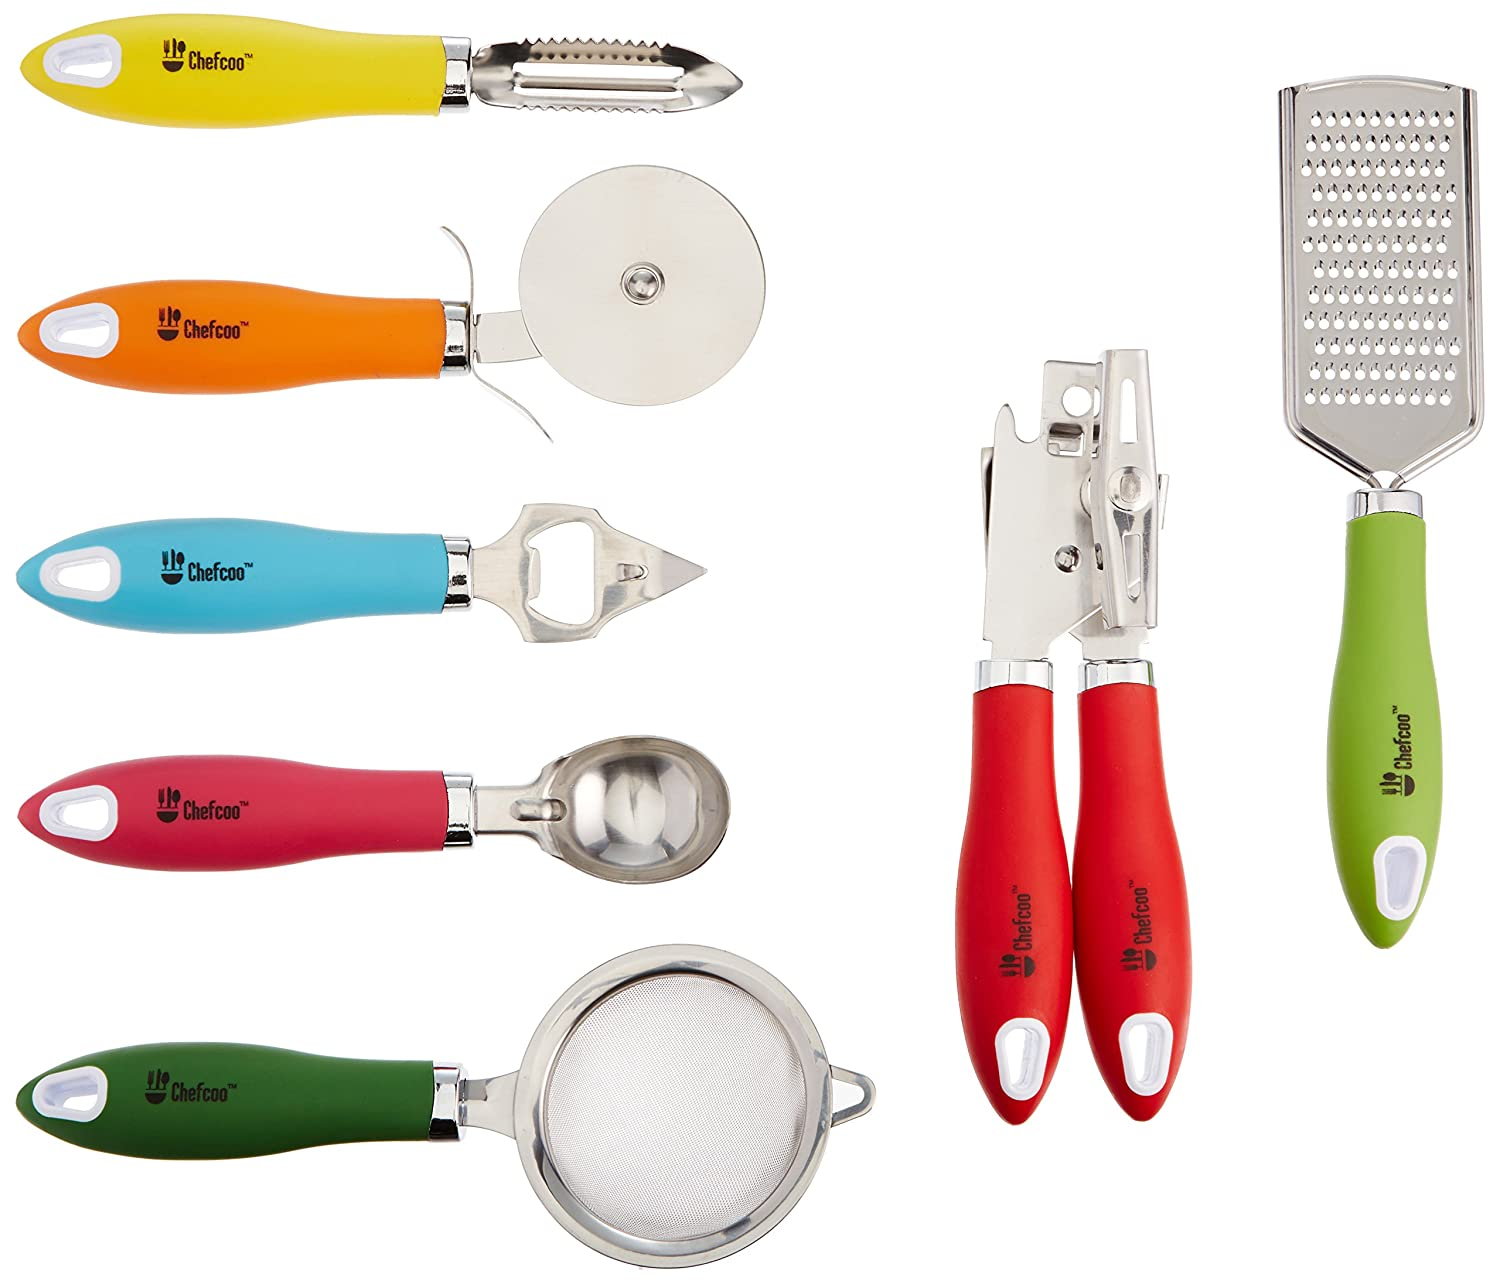 amazon com kitchen gadgets tools set by chefcoo stainless